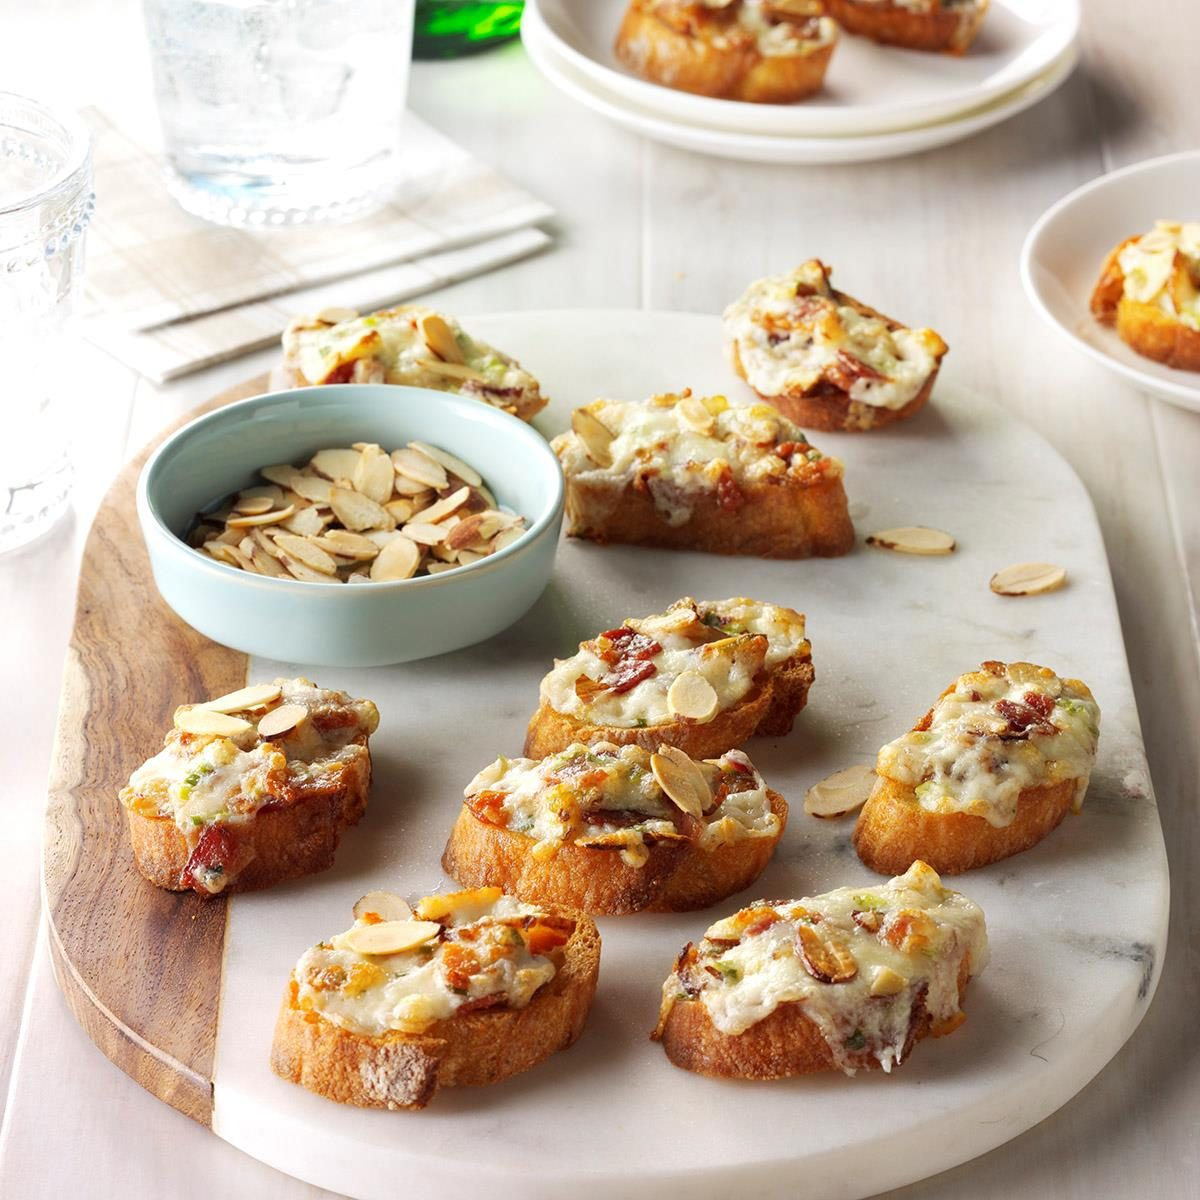 Party Finger Food Ideas Recipes: Almond-Bacon Cheese Crostini Recipe